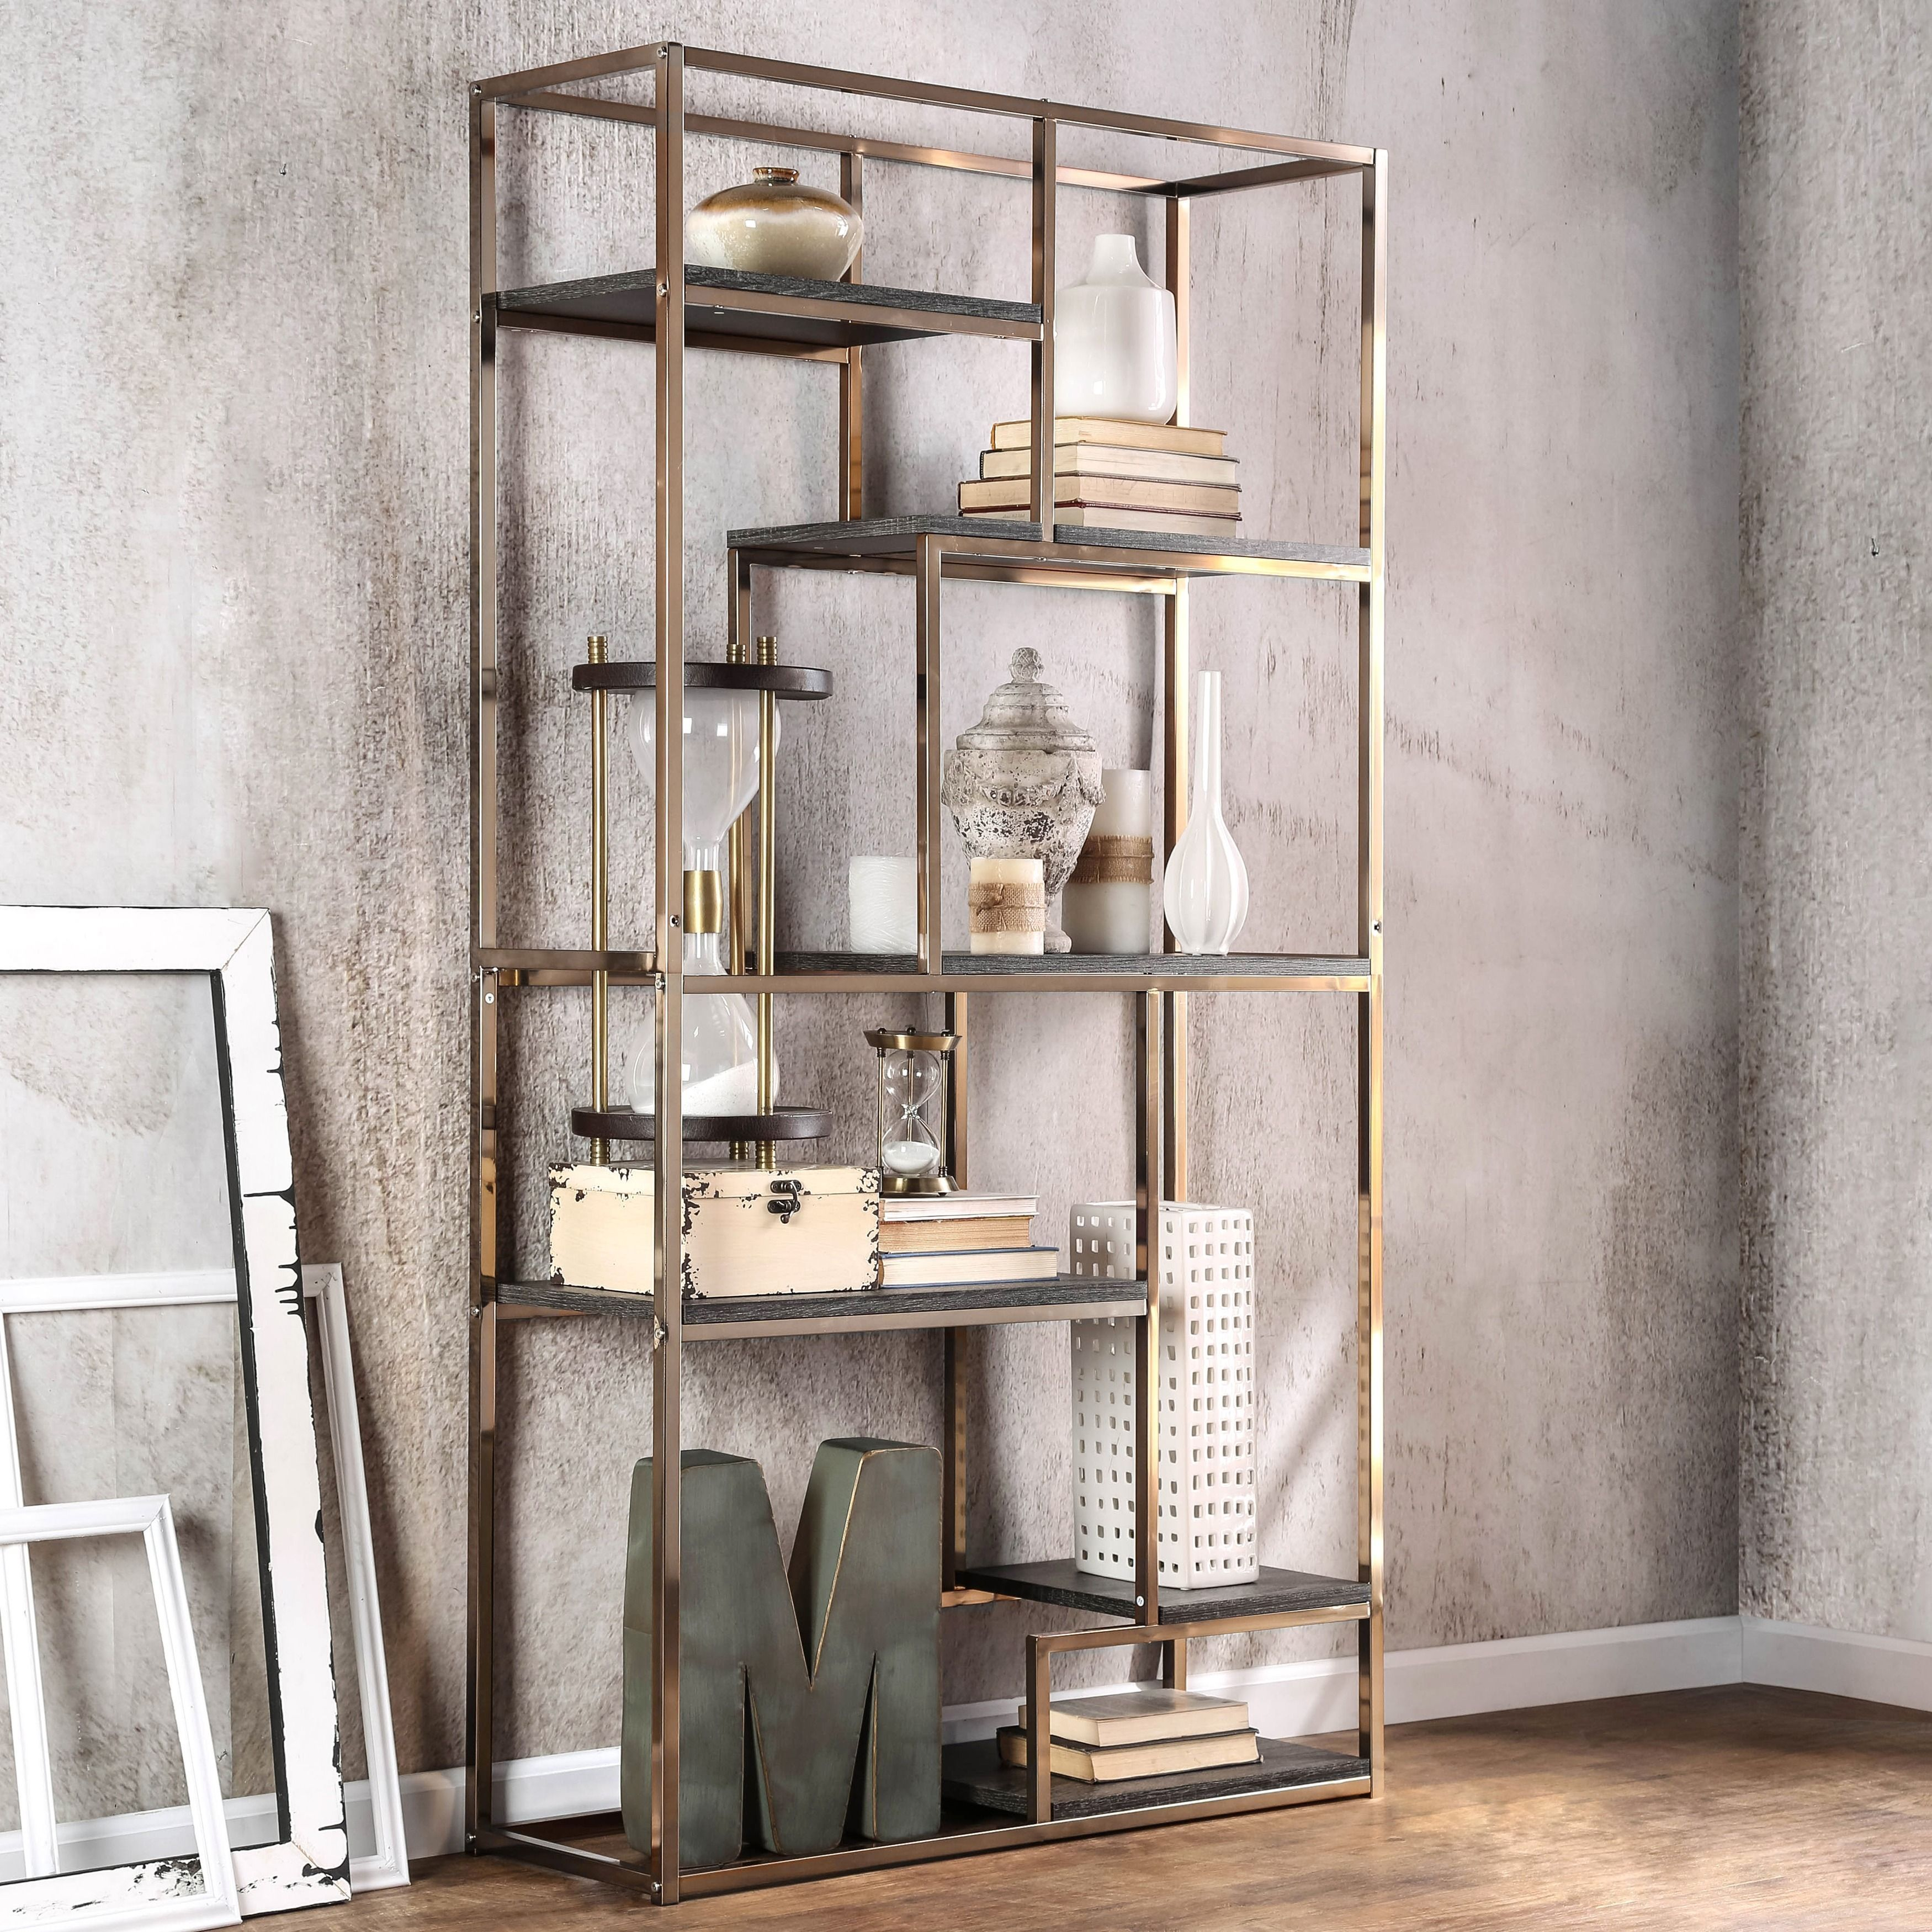 furniture of america nara contemporary 6 shelf tiered open bookcase champagne gold